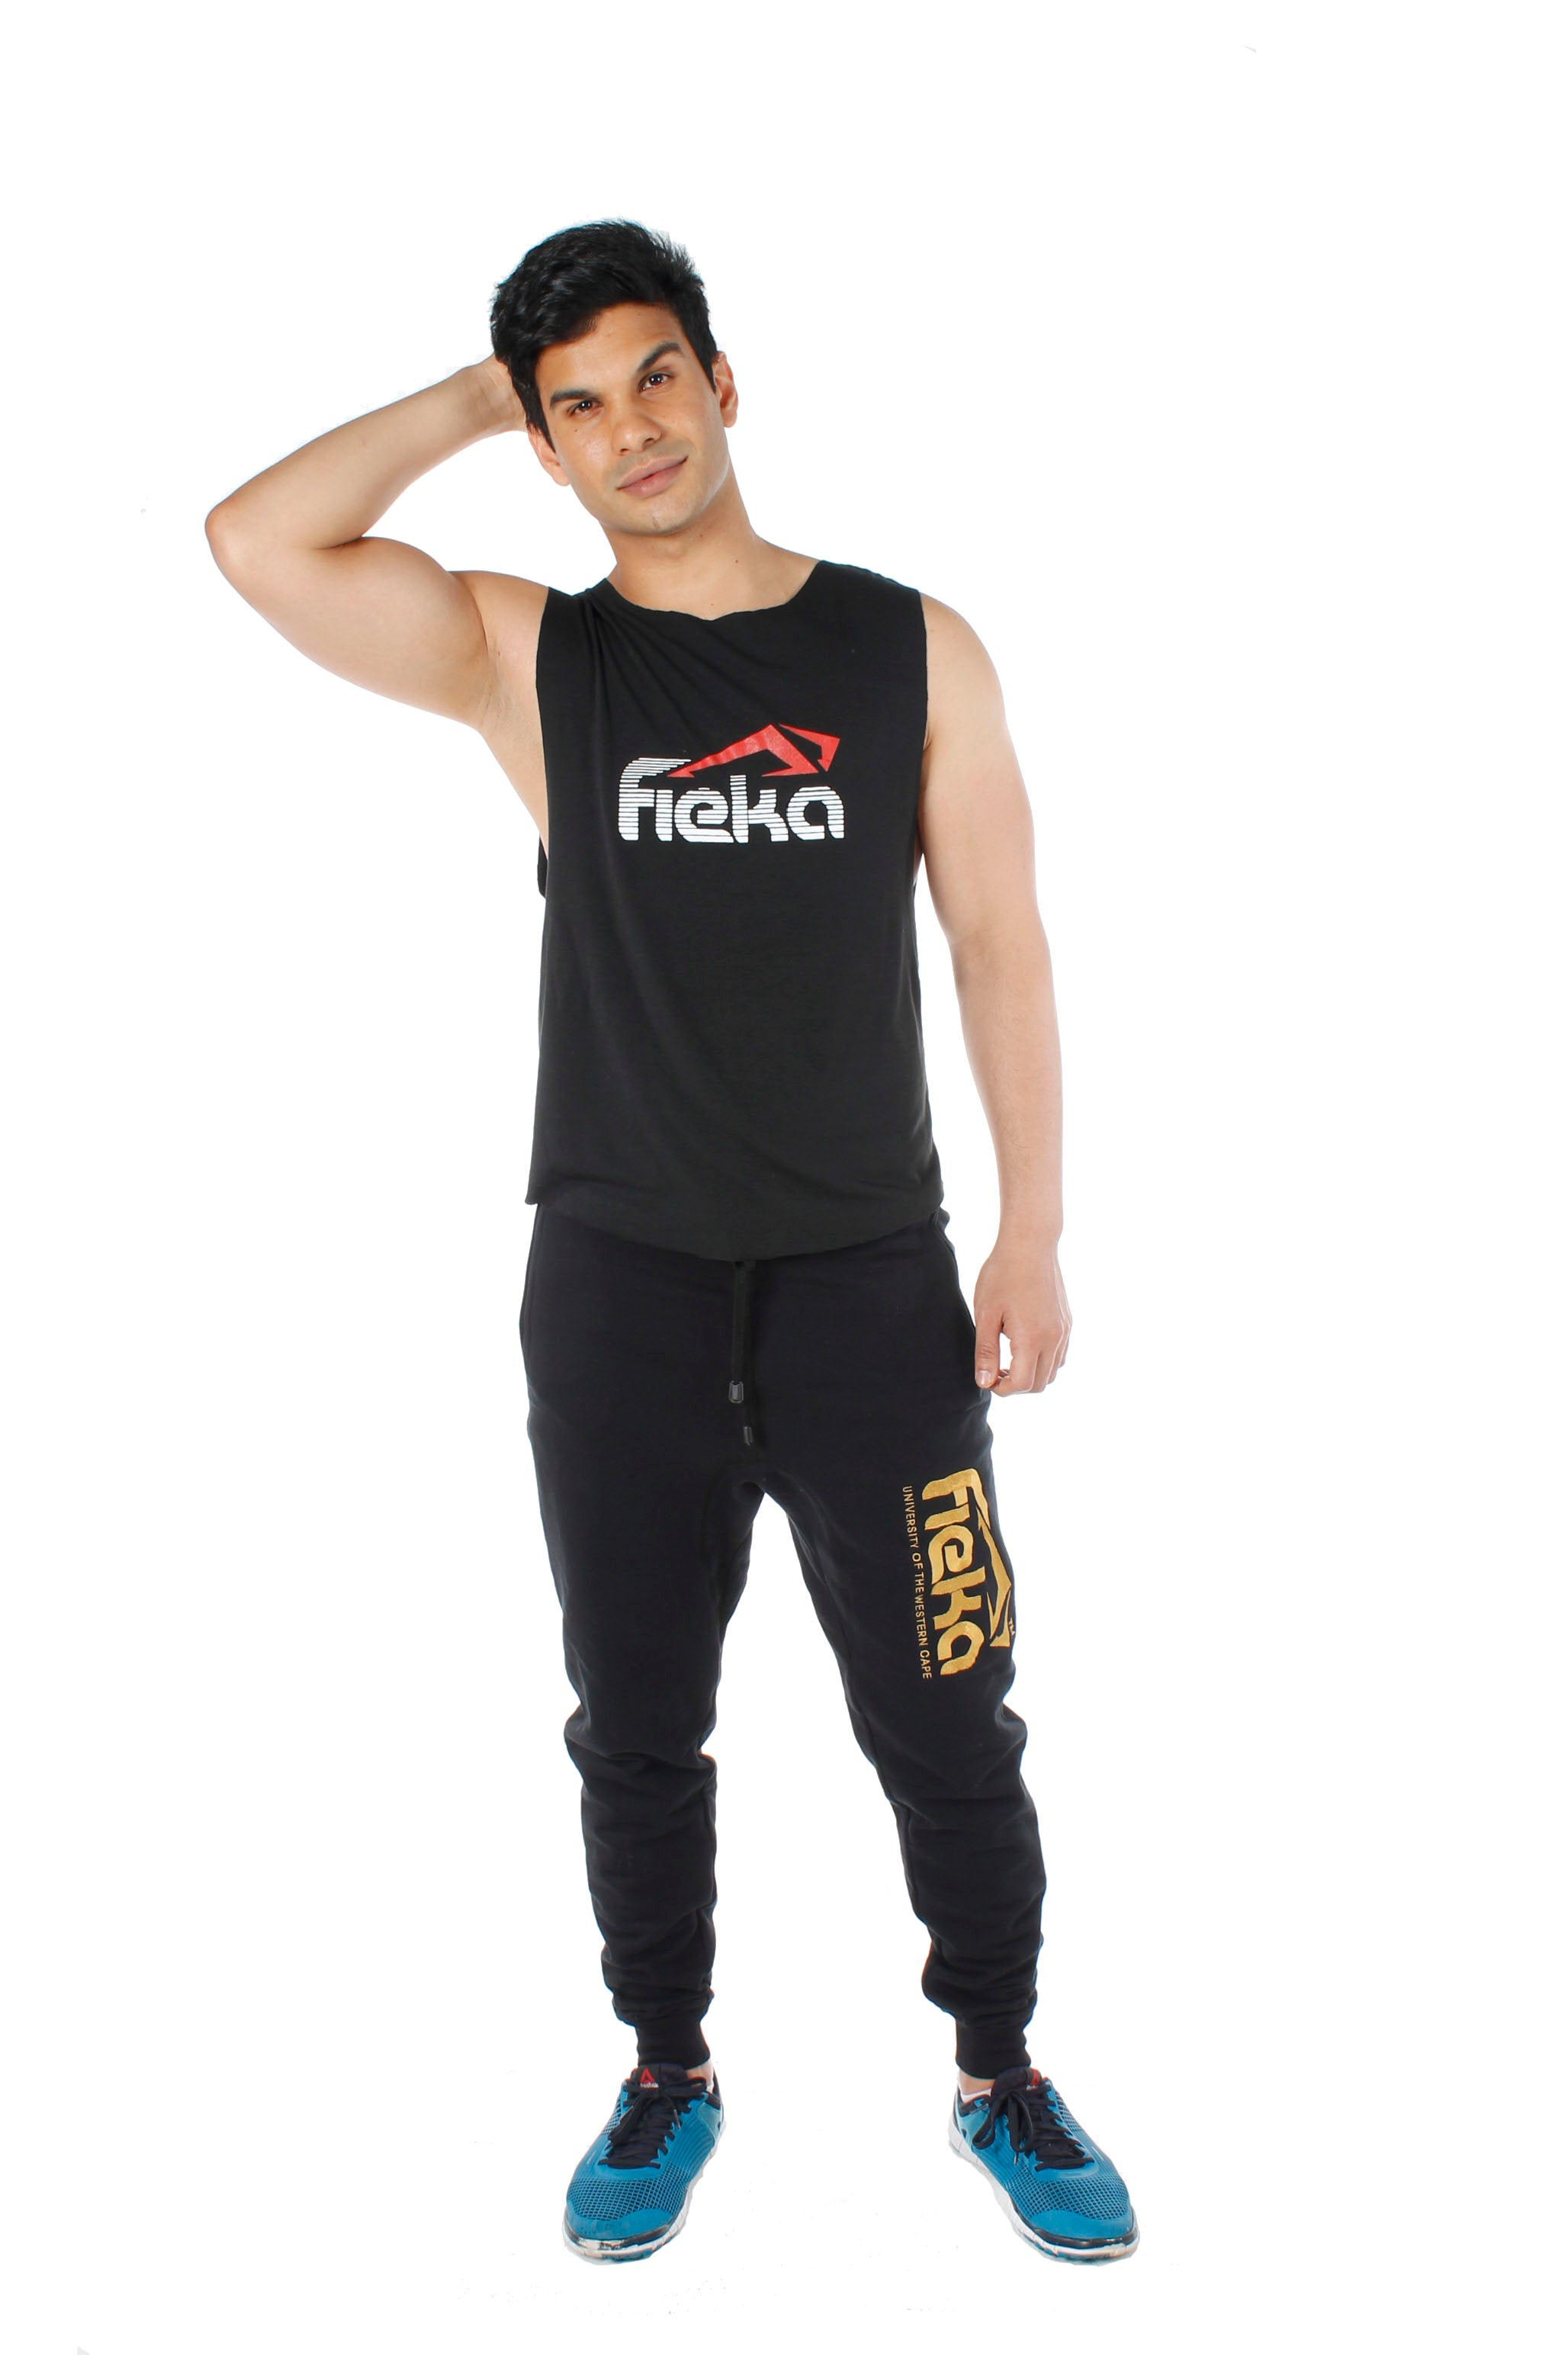 FIEKA Mens Crew Neck Training Vest